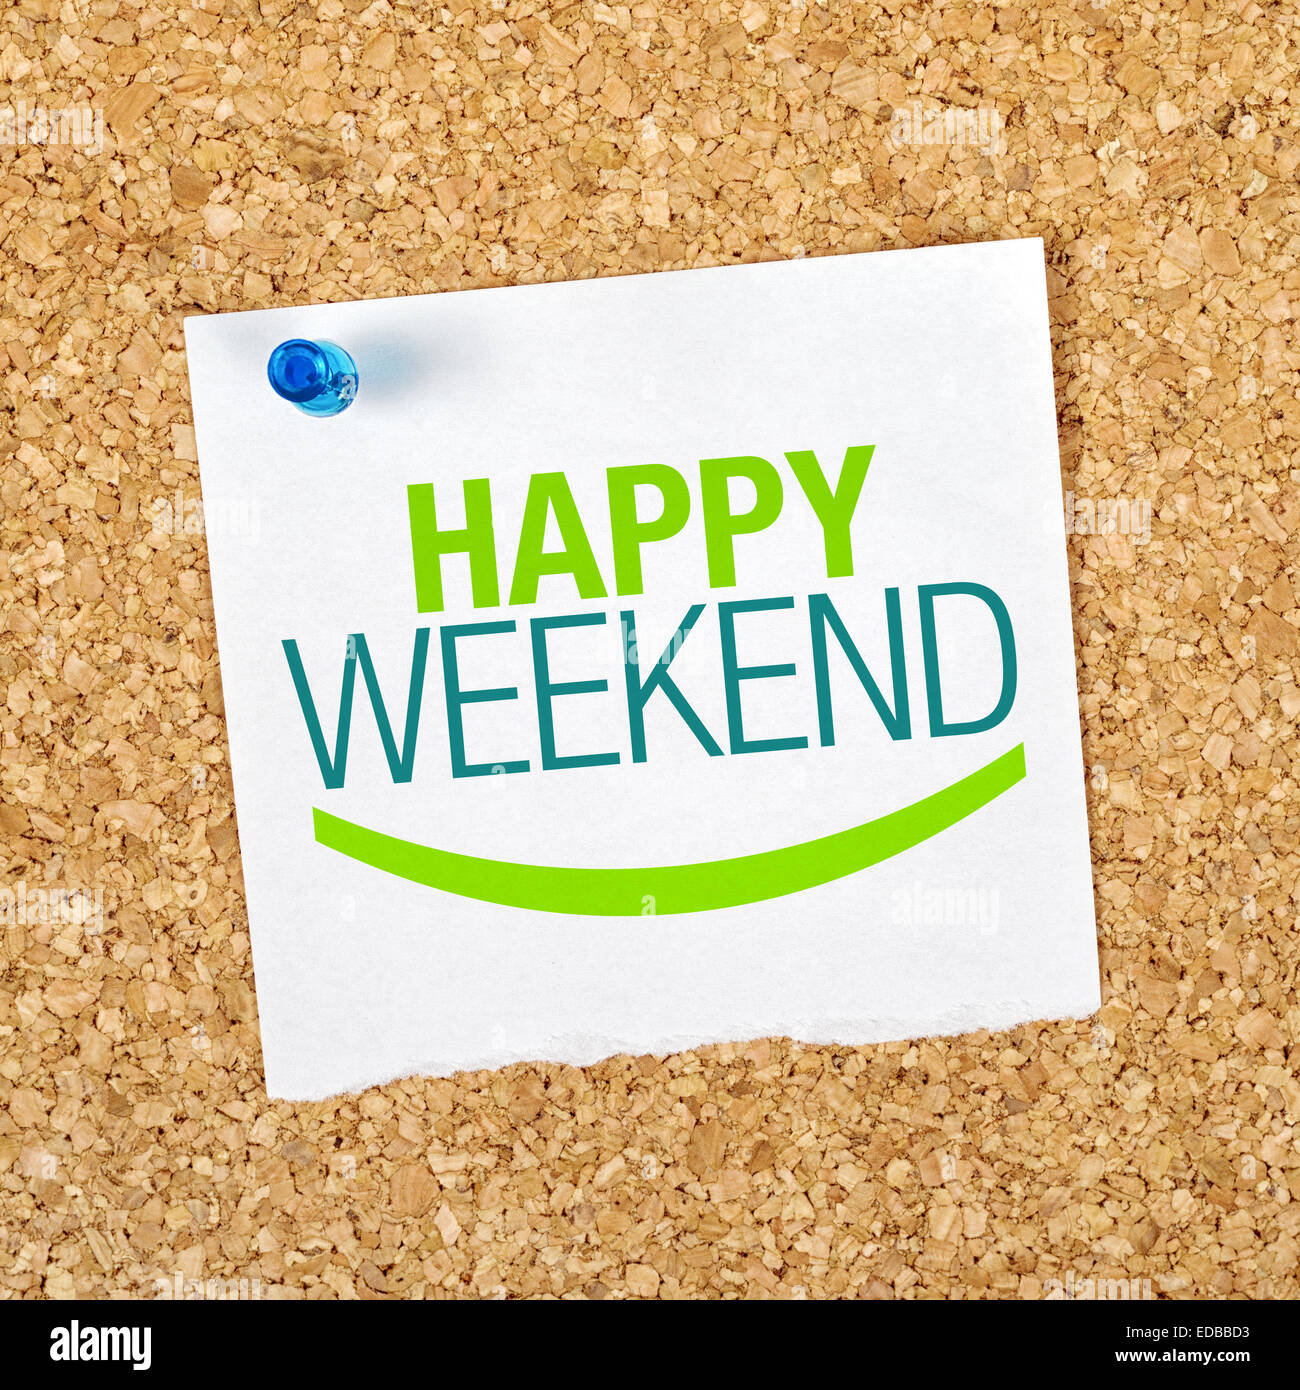 Happy Weekend Reminder Note Pinned to a Cork Memory Bulletin Board. - Stock Image